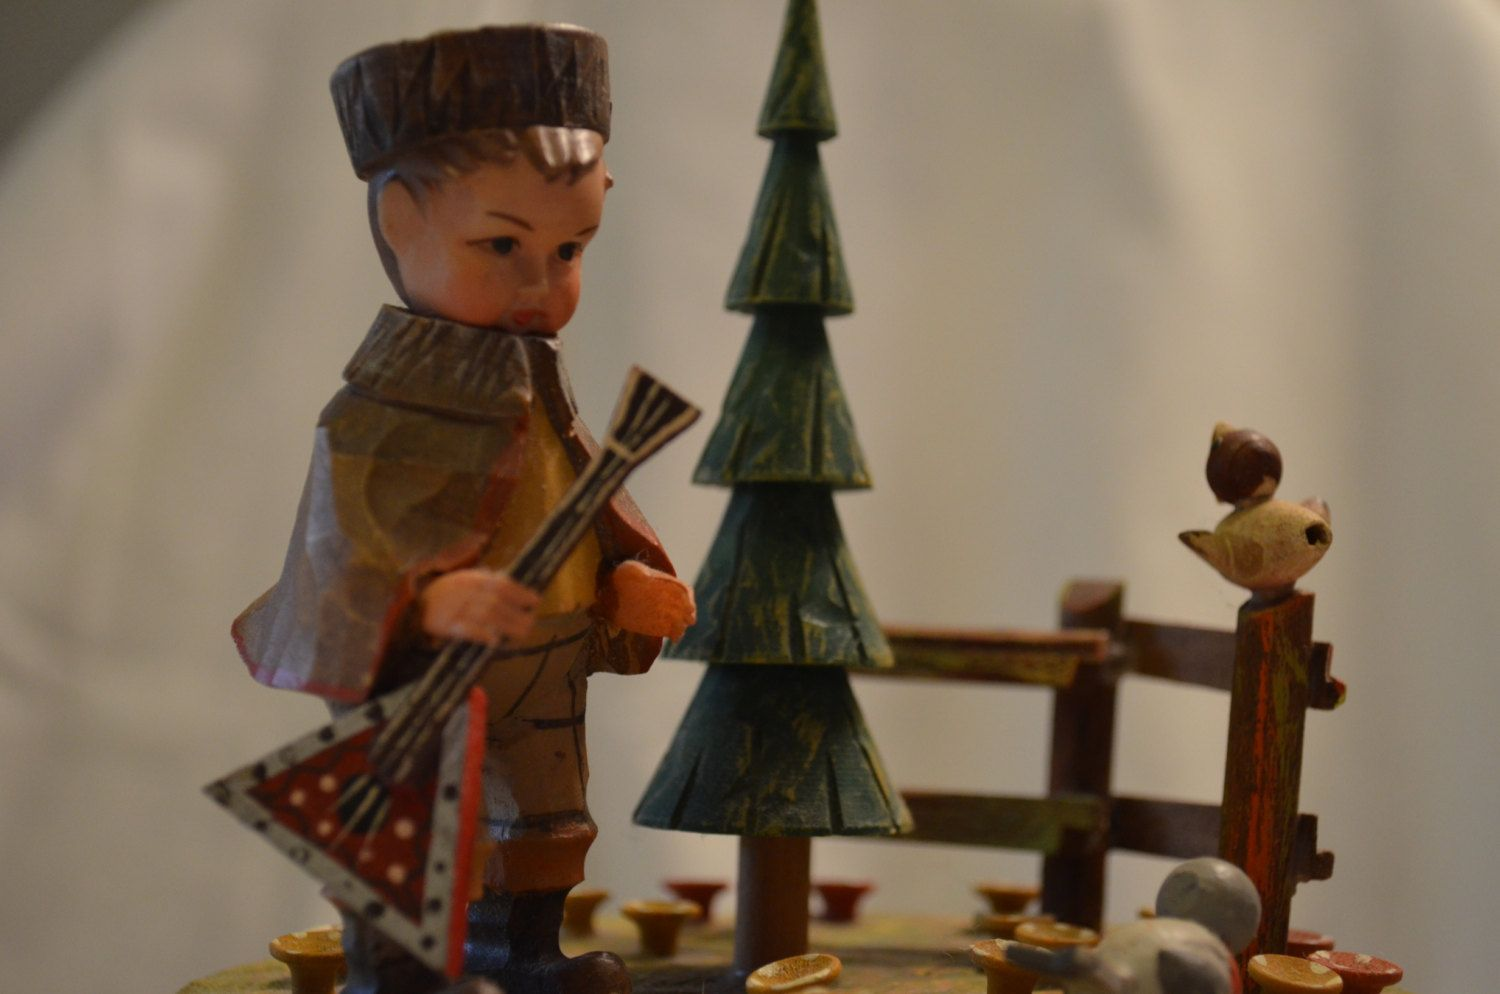 """ANRI Thorens Wooden Music Box Featuring a Boy with His Guitar - Genuine Swiss Movement Plays """"Lara's Theme"""" from Dr. Zhivago by…"""